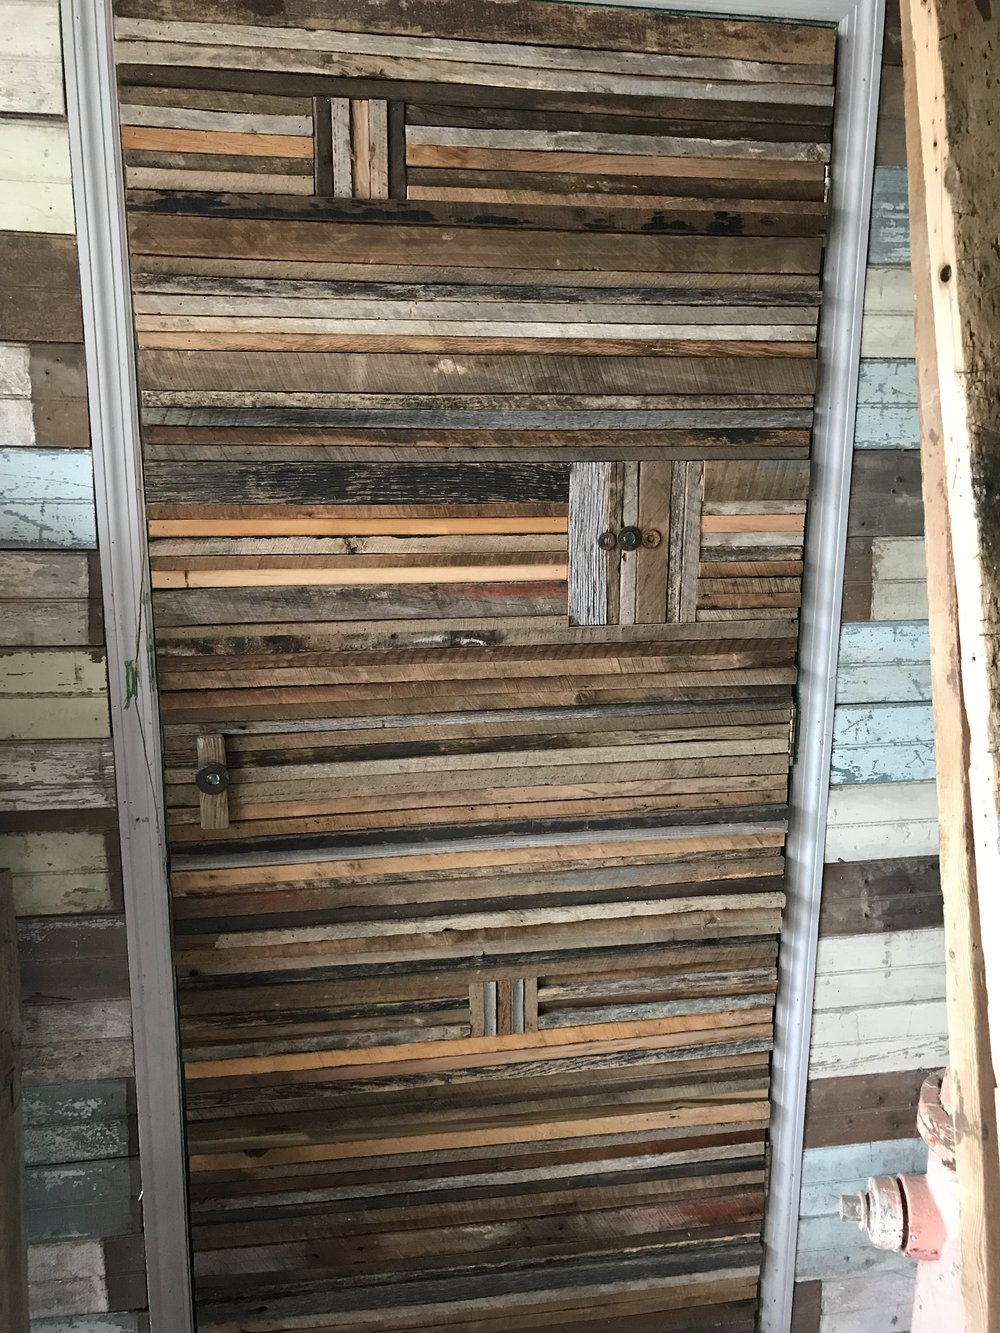 Reclaimed barn wood used to create a unique cover for a door